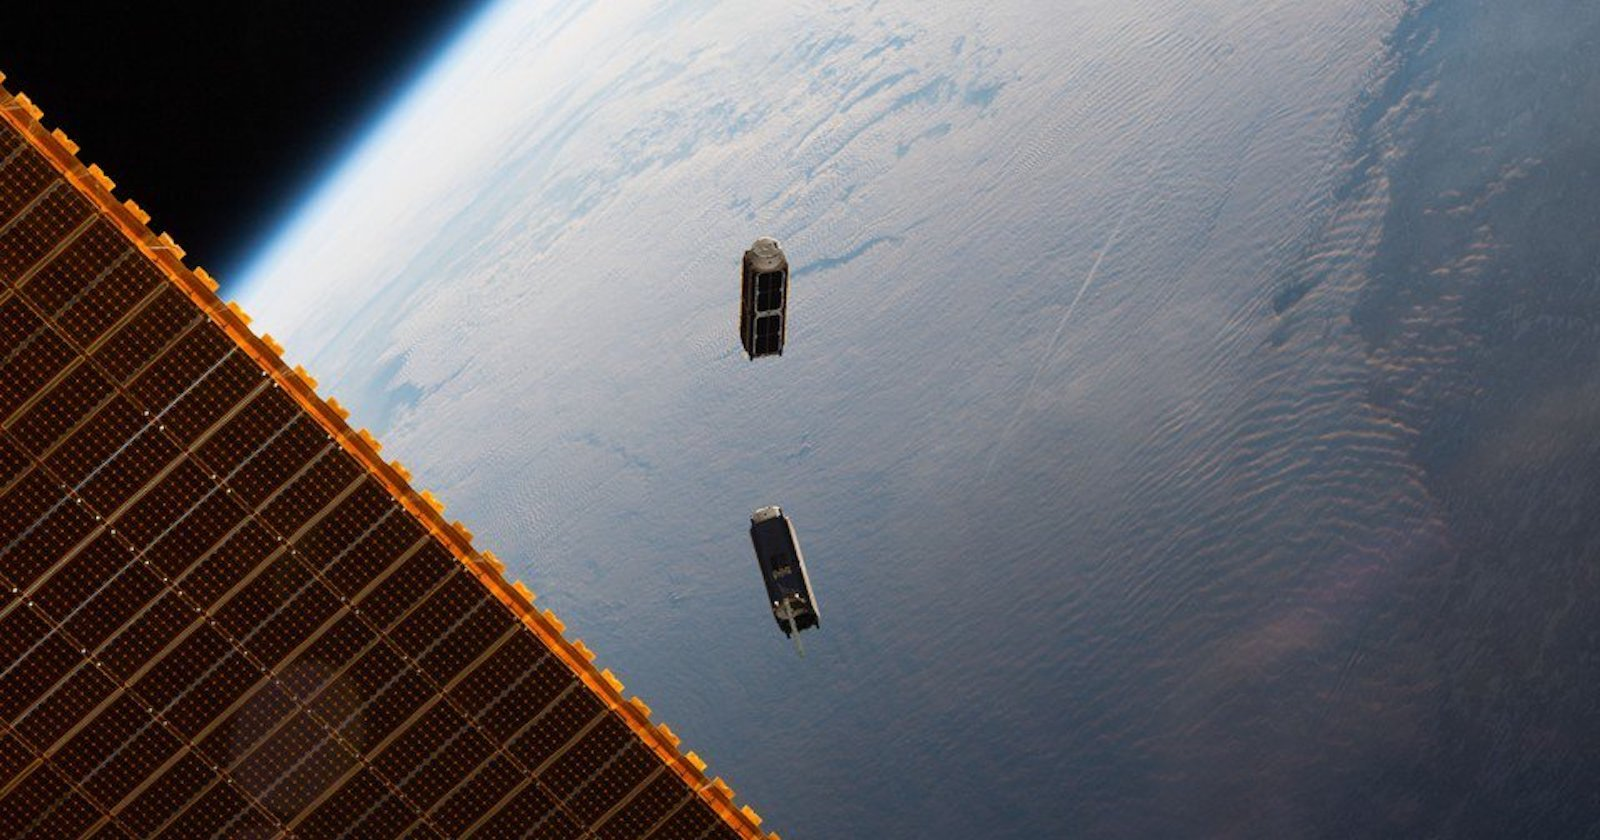 Satellite Startup Will Capture a New 50 Terapixel Image of Earth Every Day